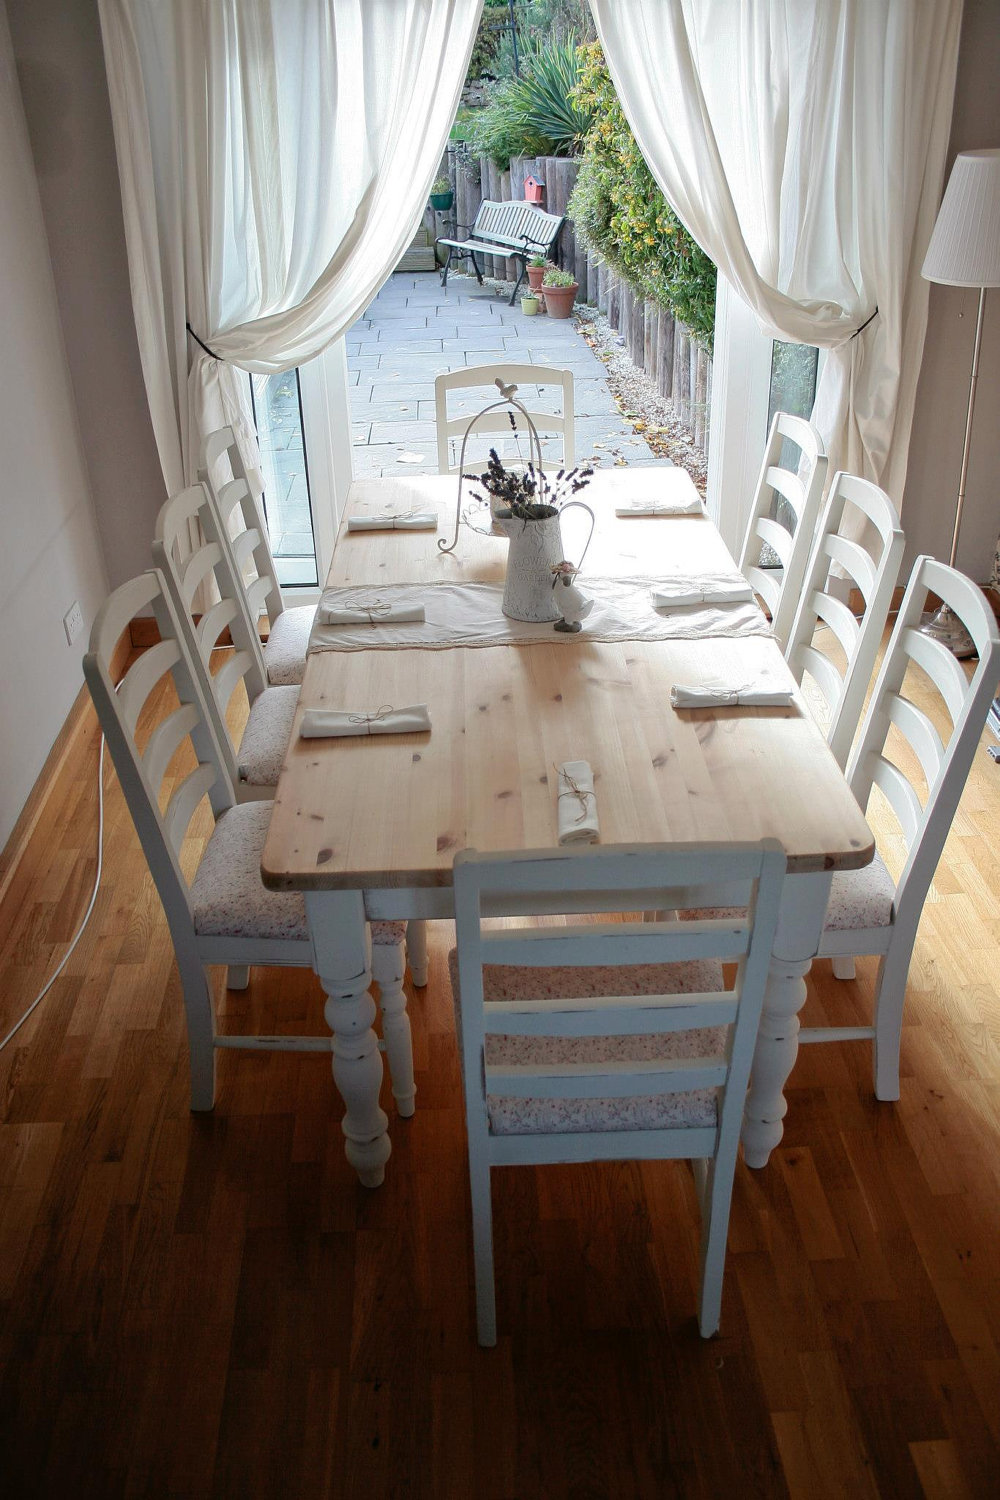 Shabby chic dining room table large and beautiful photos photo to select shabby chic dining - Shabby chic dining rooms ...